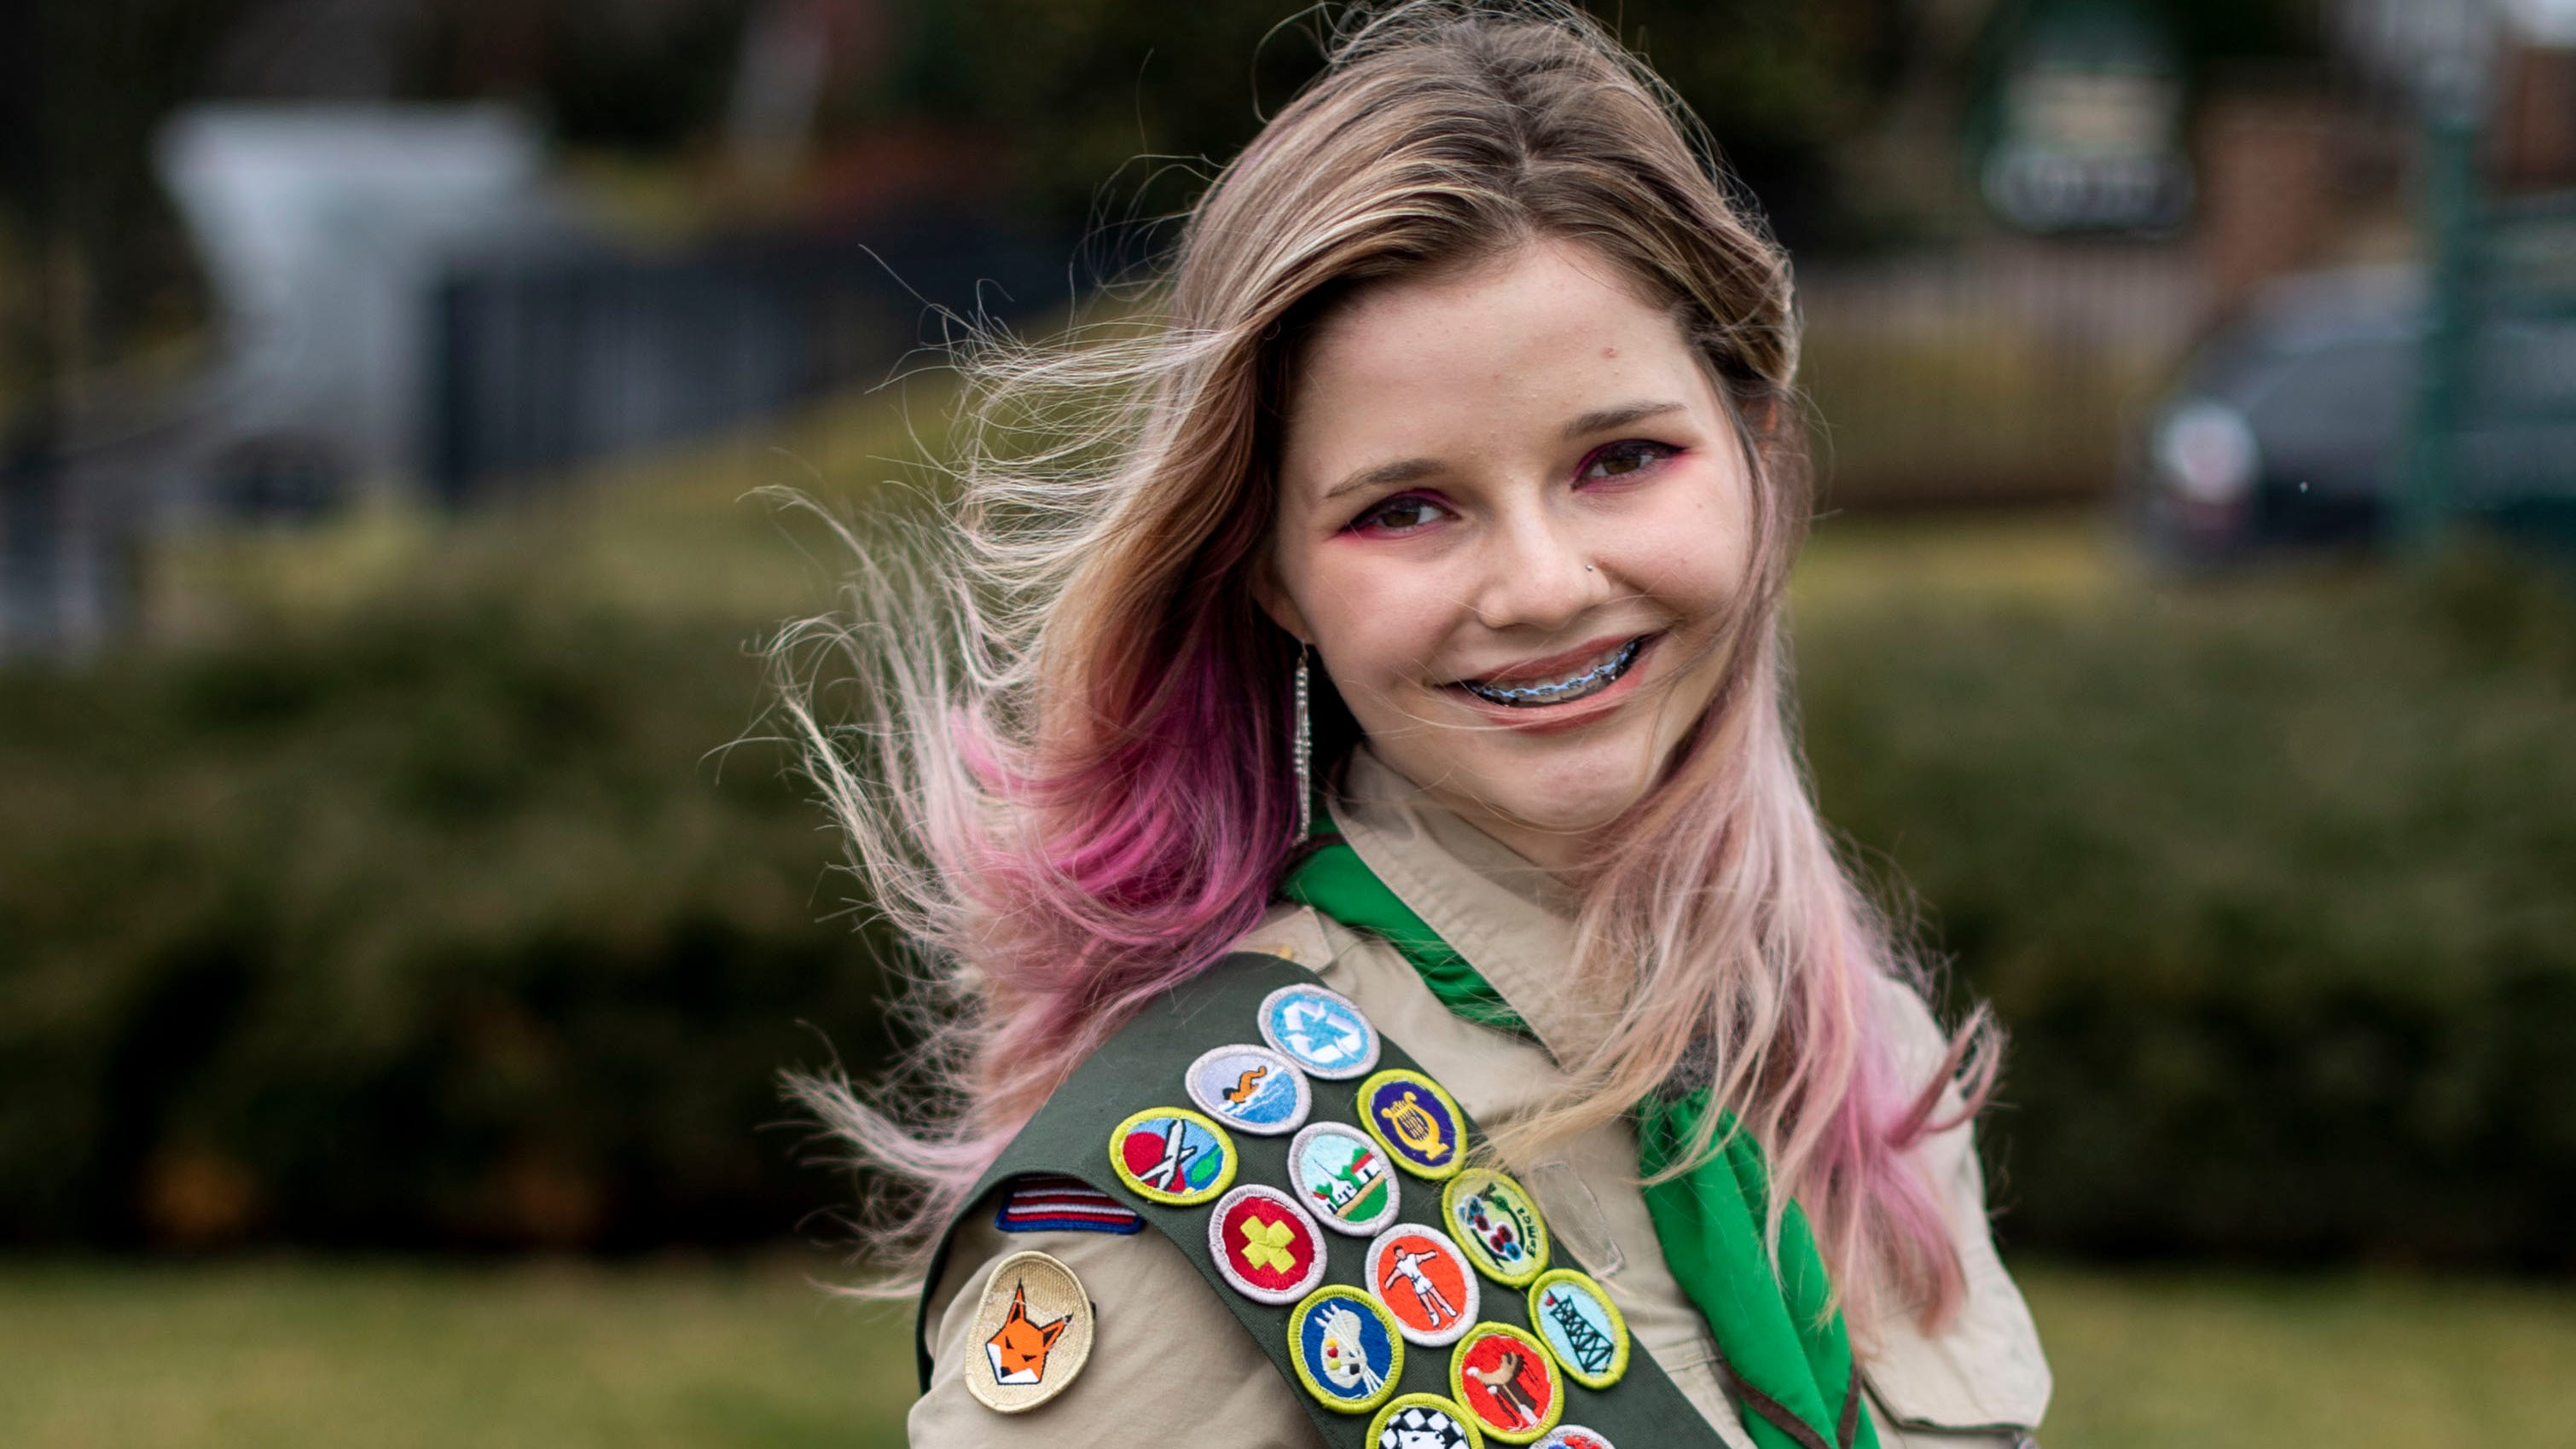 Brentwood girl earns Boy Scouts' highest rank: Eagle